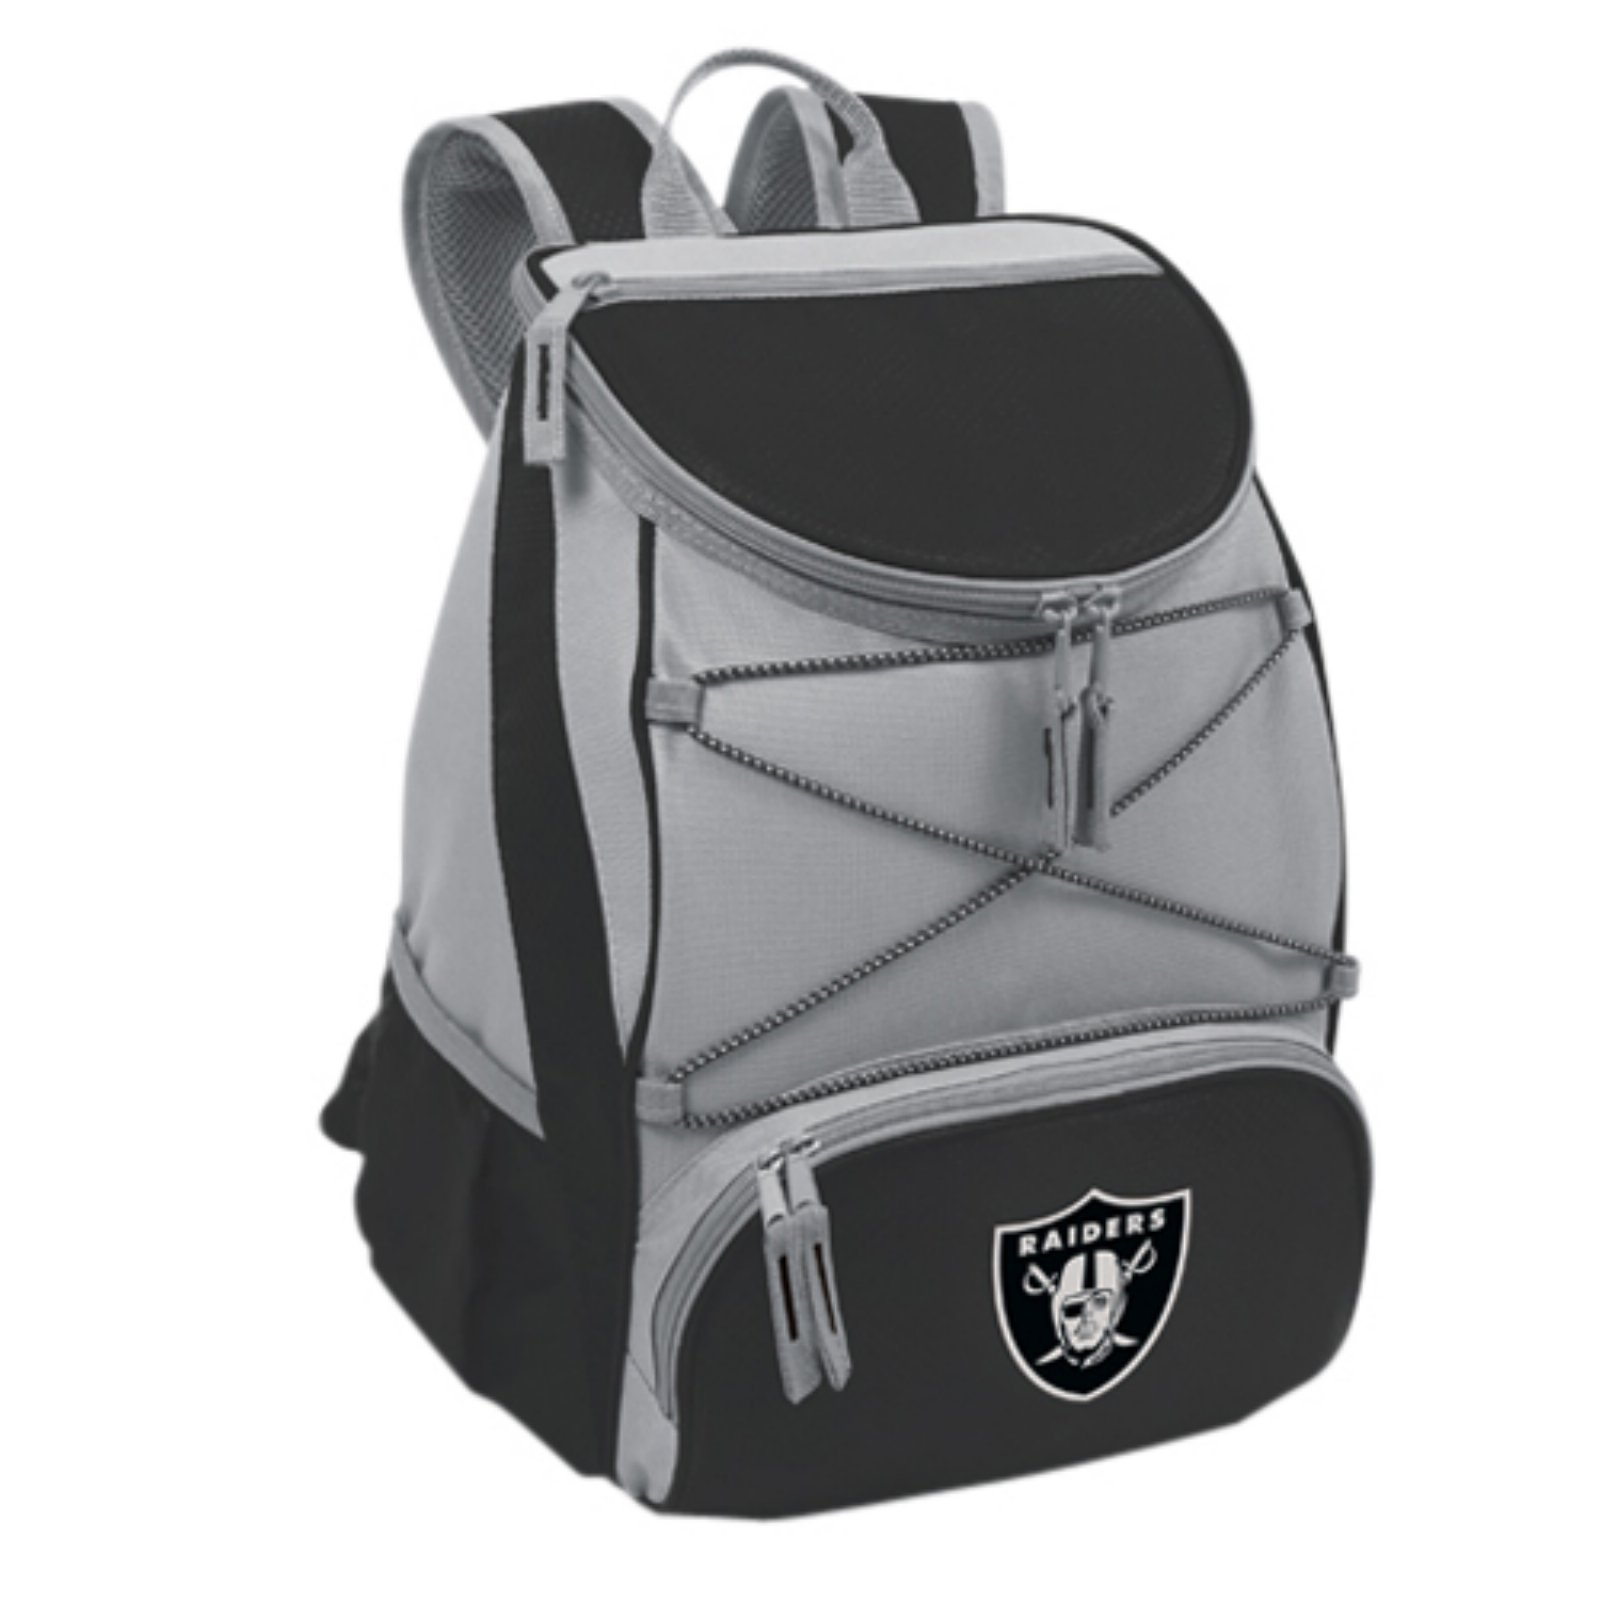 Picnic Time PTX Cooler, Black Oakland Raiders Digital Print